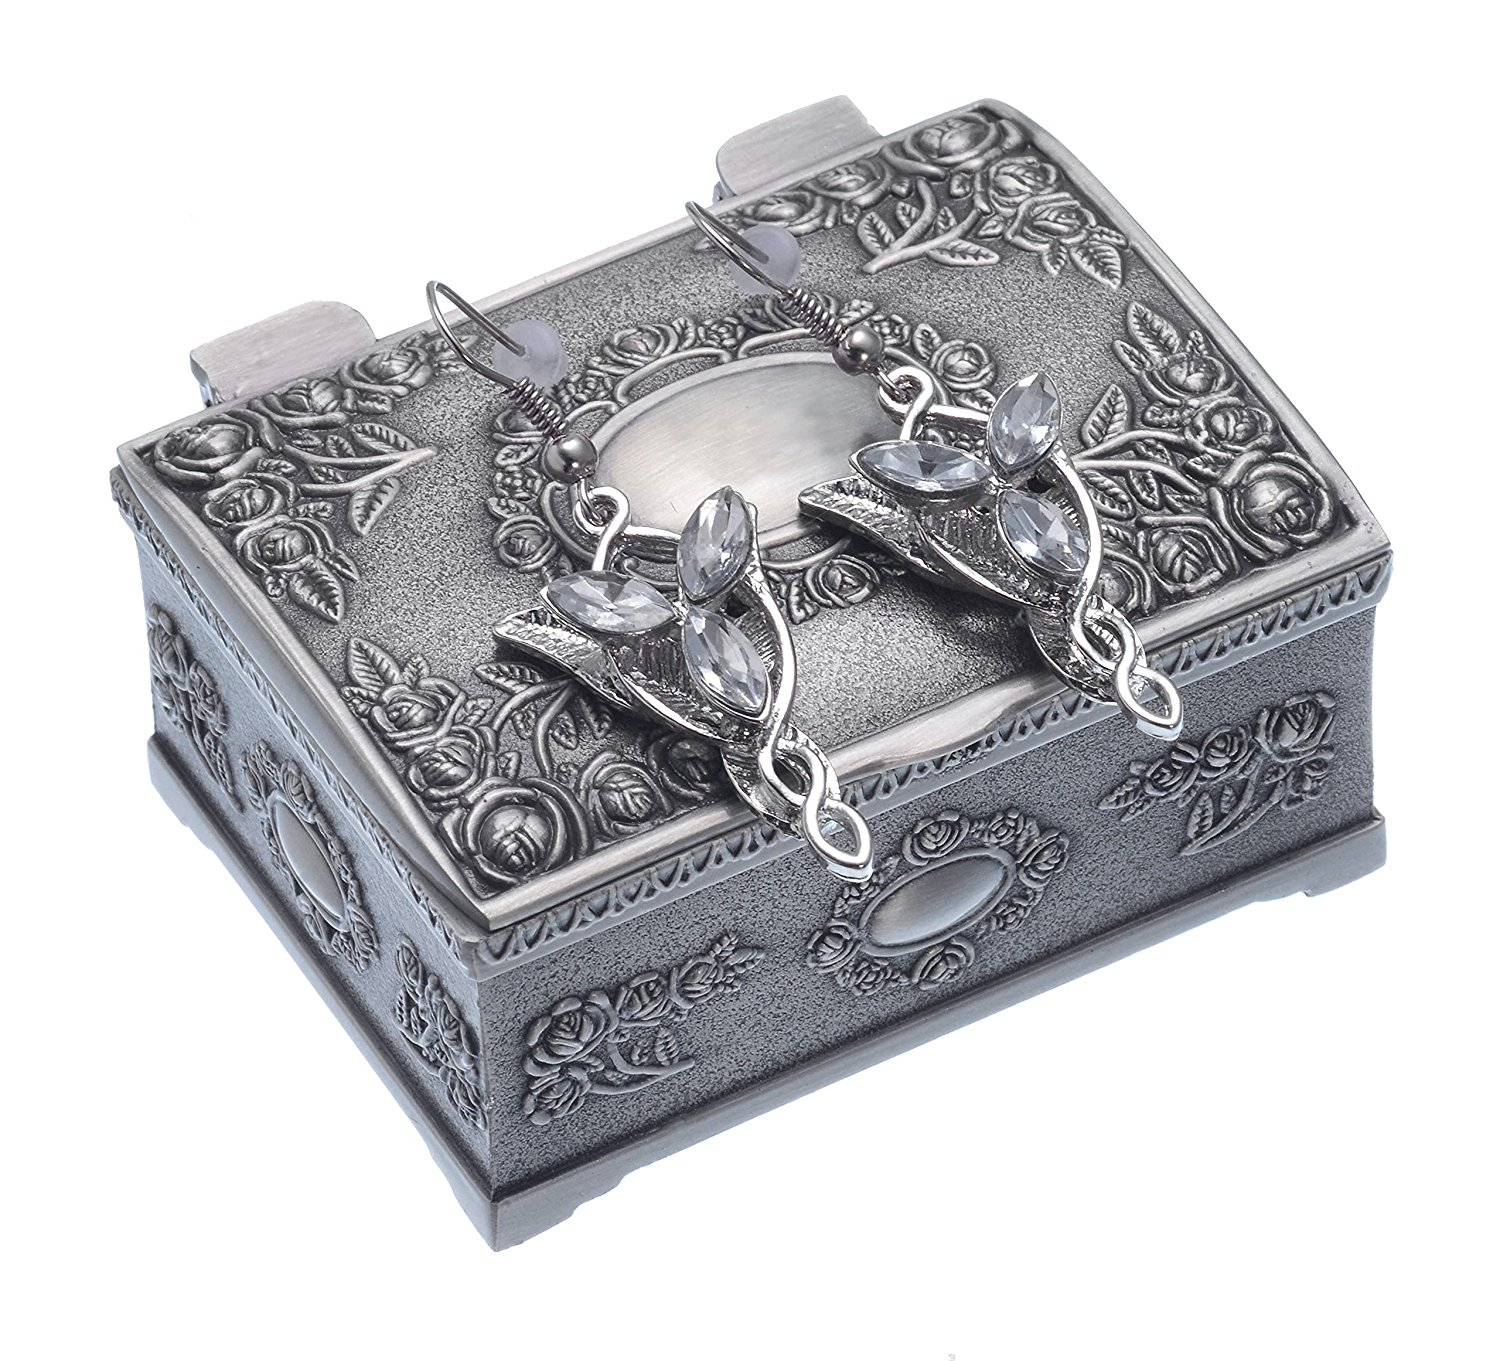 Vintage Lord of the Rings Movie Arwen Evenstar Silver Pendant Earrings  w/ Jewery box